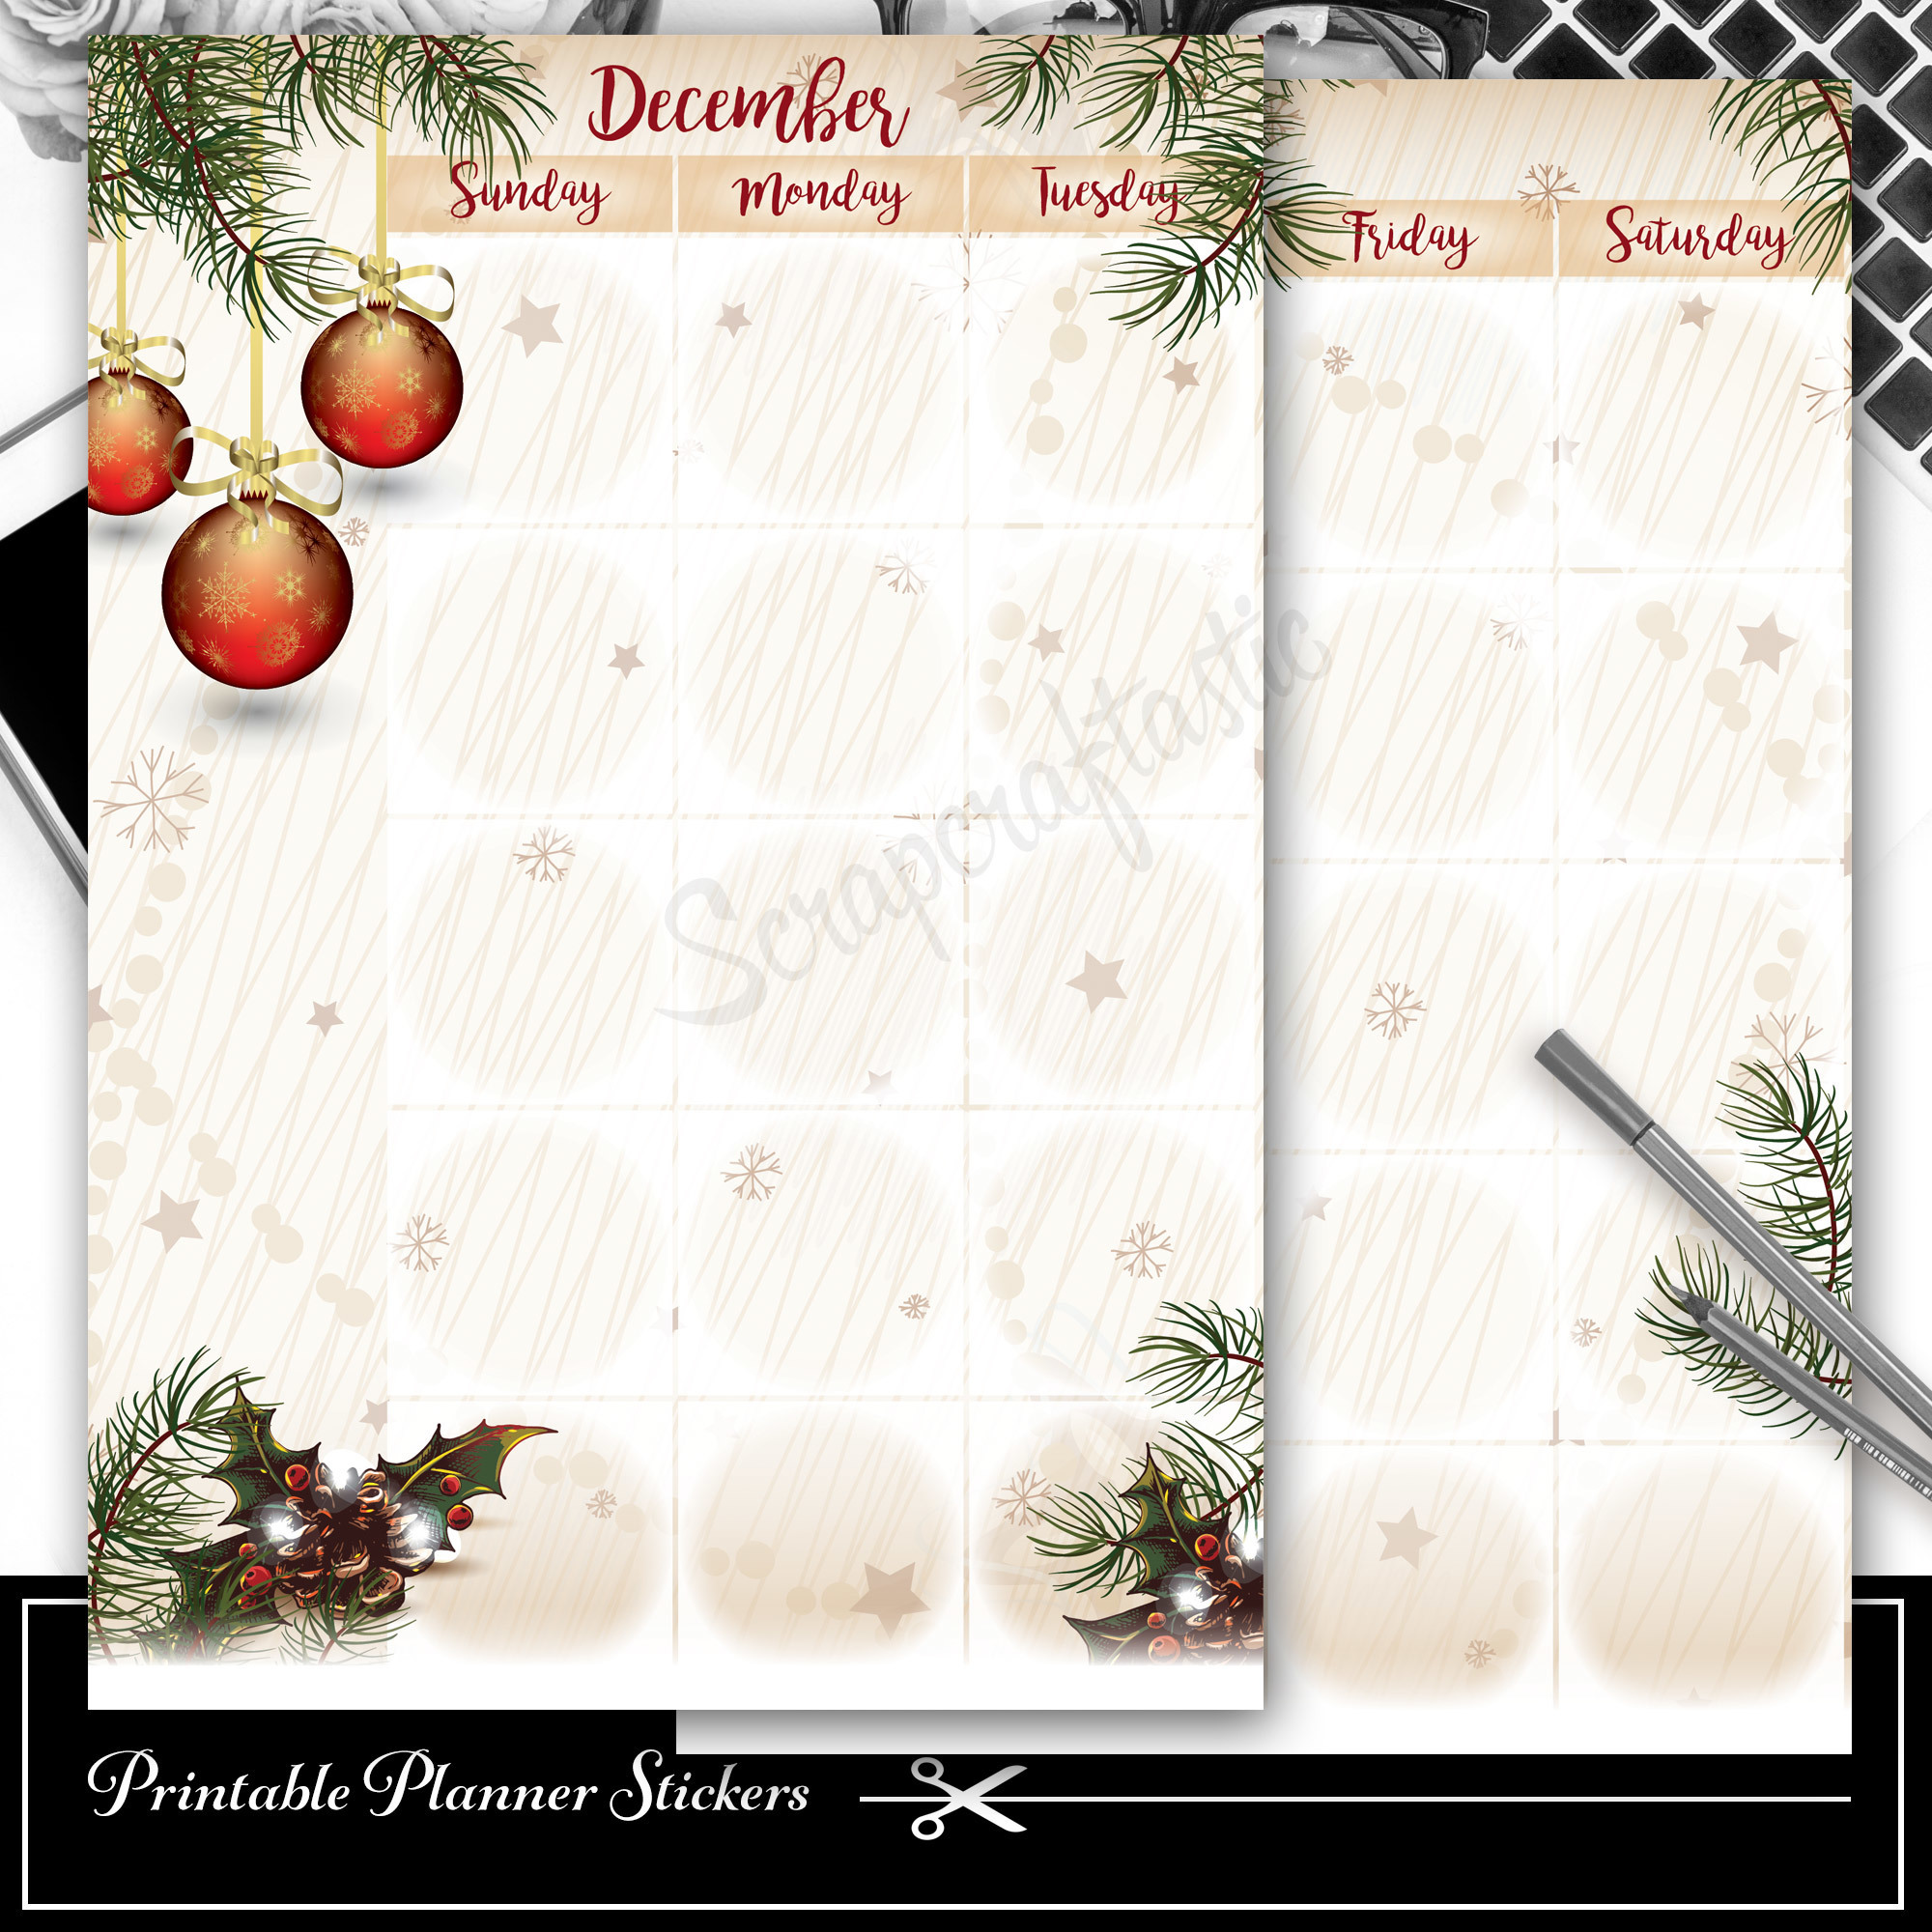 December Monthly Planner Spread Printable Planner Sticker Overlay for classic size Mambi Happy Planner 01002